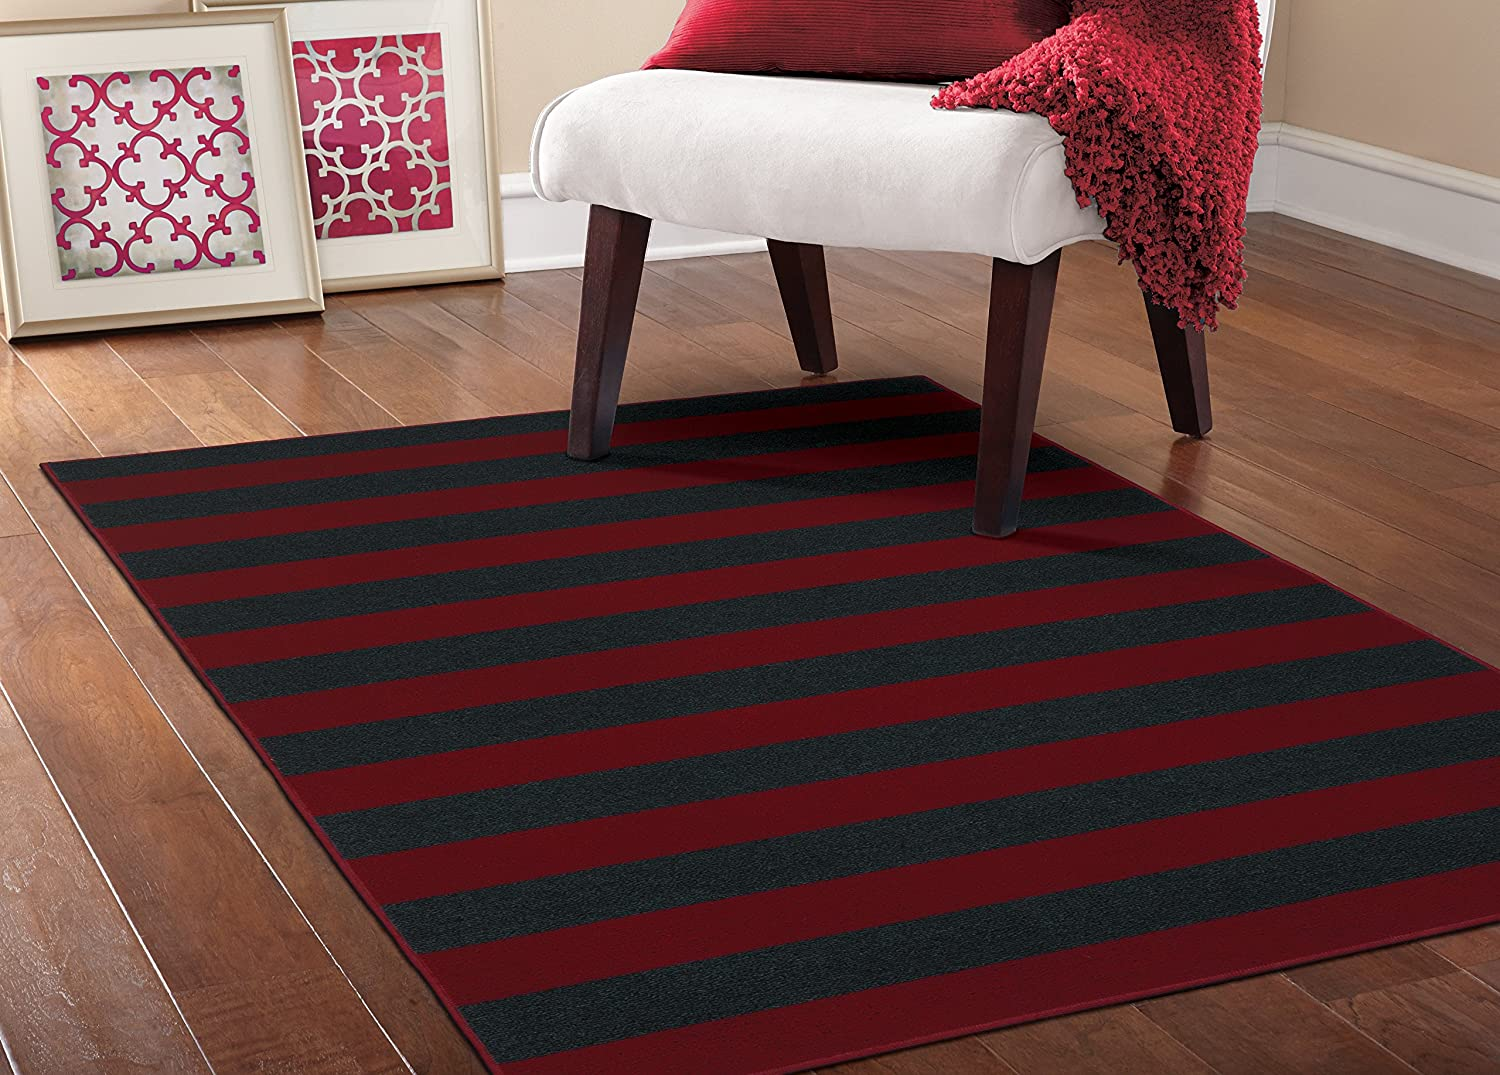 Garland Rug Rugby Area High quality new 5 Navy Red 7.5 x Max 43% OFF Burgundy